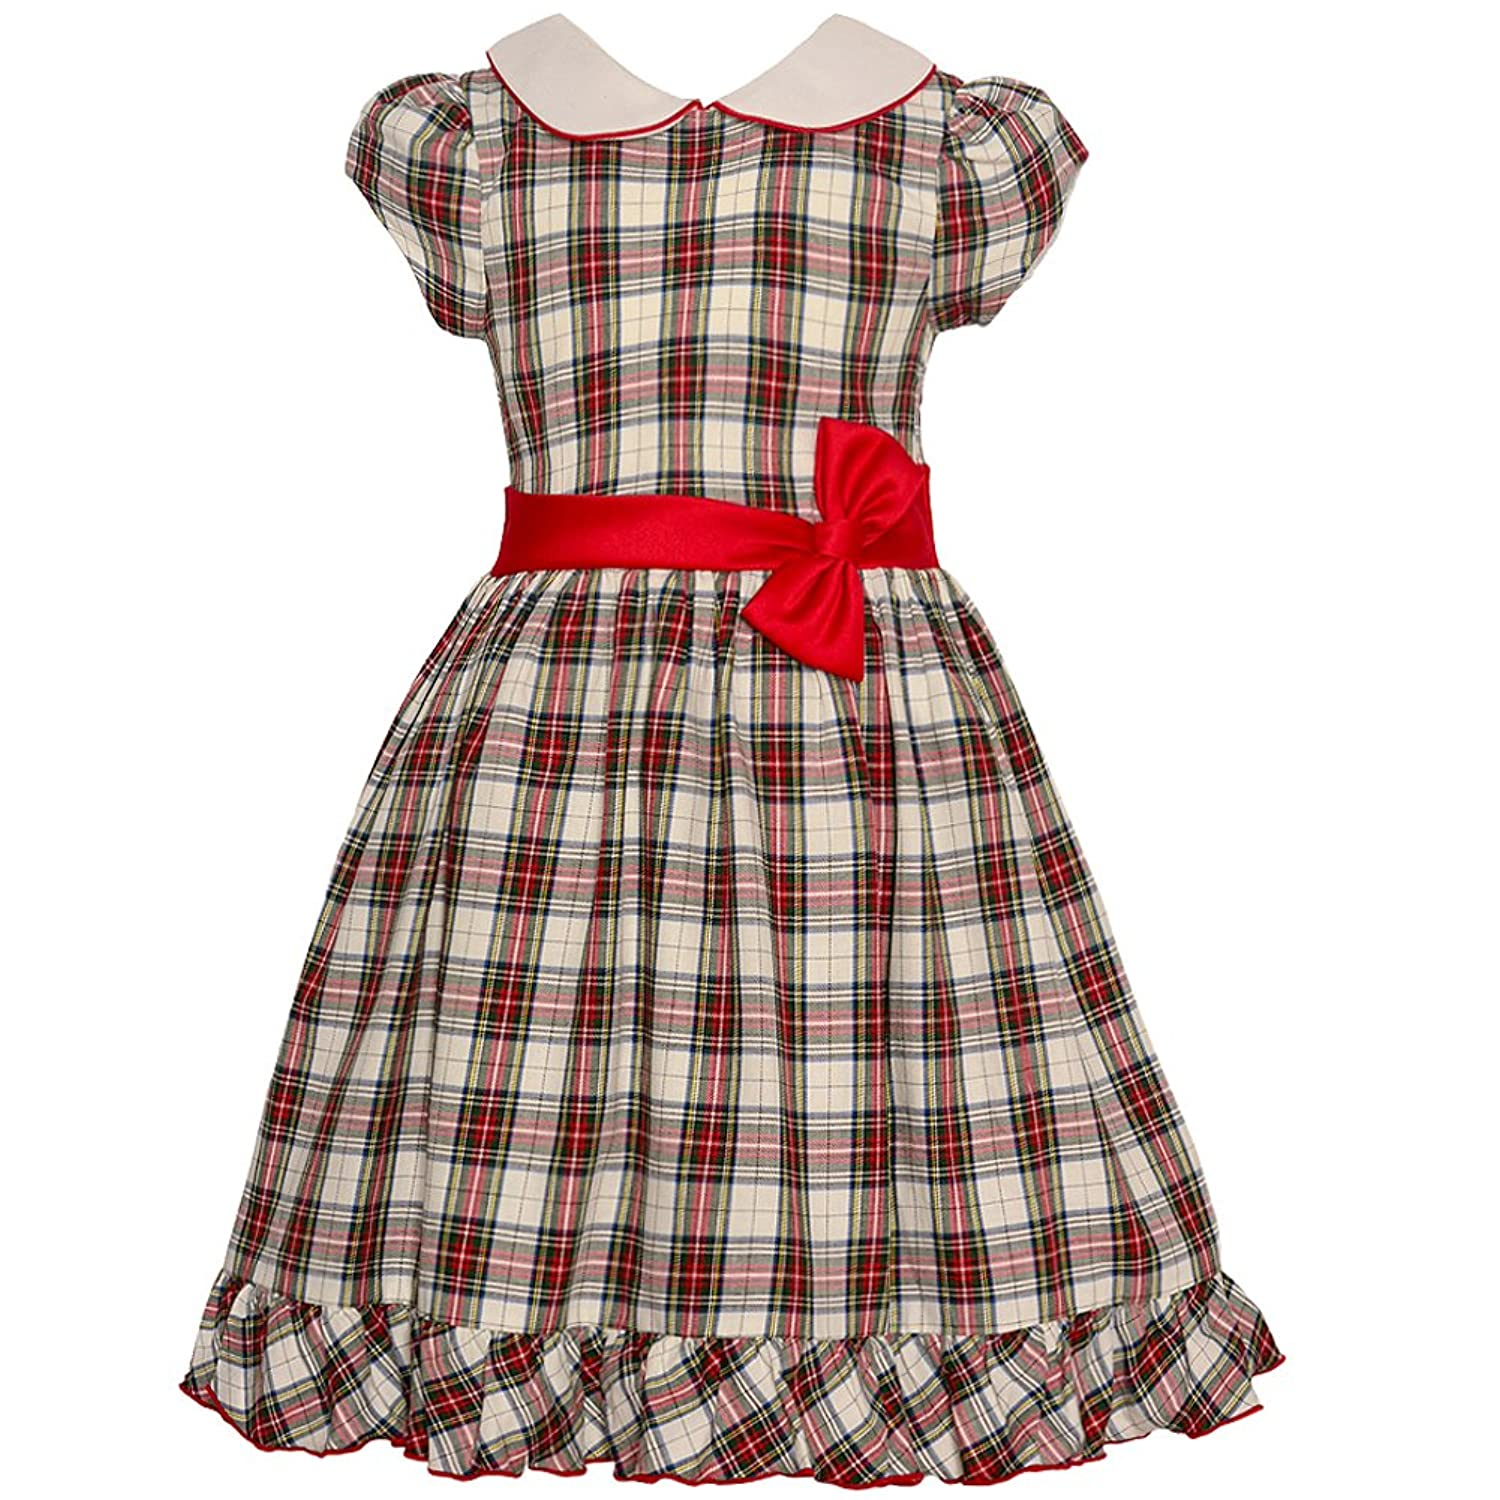 00875fc11cf9d 1940s Children's Clothing: Girls, Boys, Baby, Toddler Bonnie Jean Girls  Collared Cotton